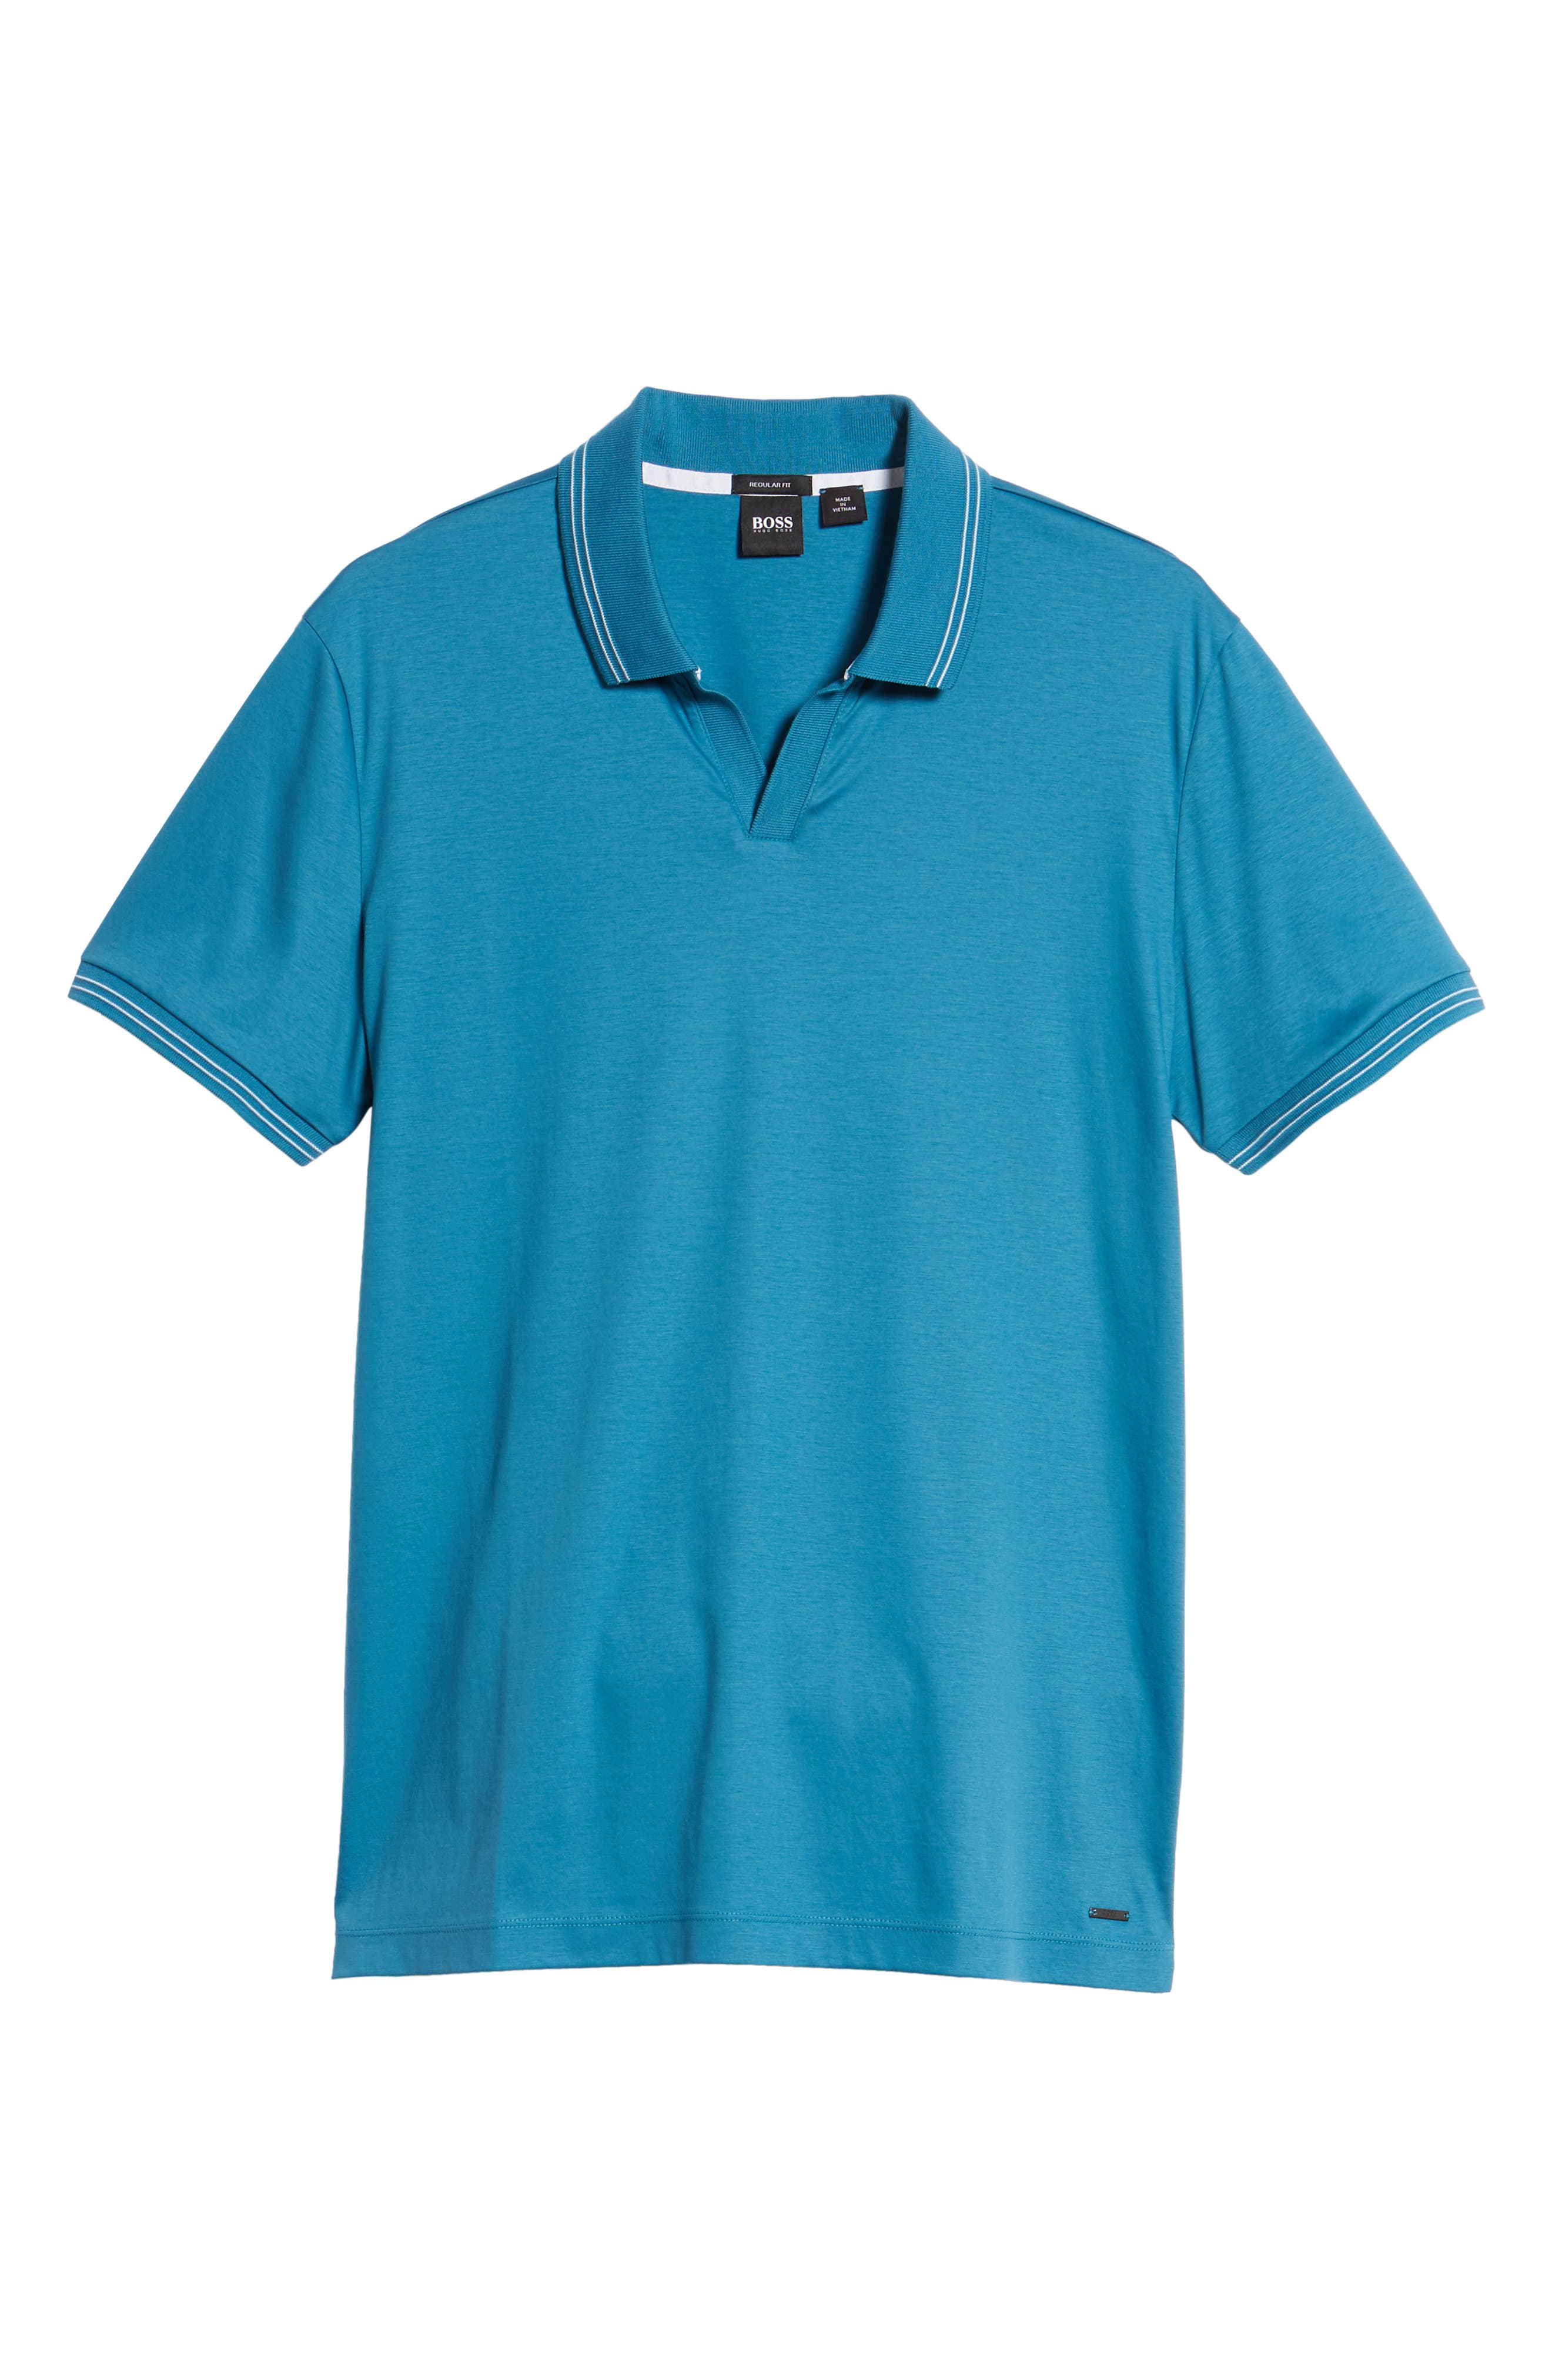 Parlay Johnny Polo Shirt,                             Alternate thumbnail 6, color,                             Blue